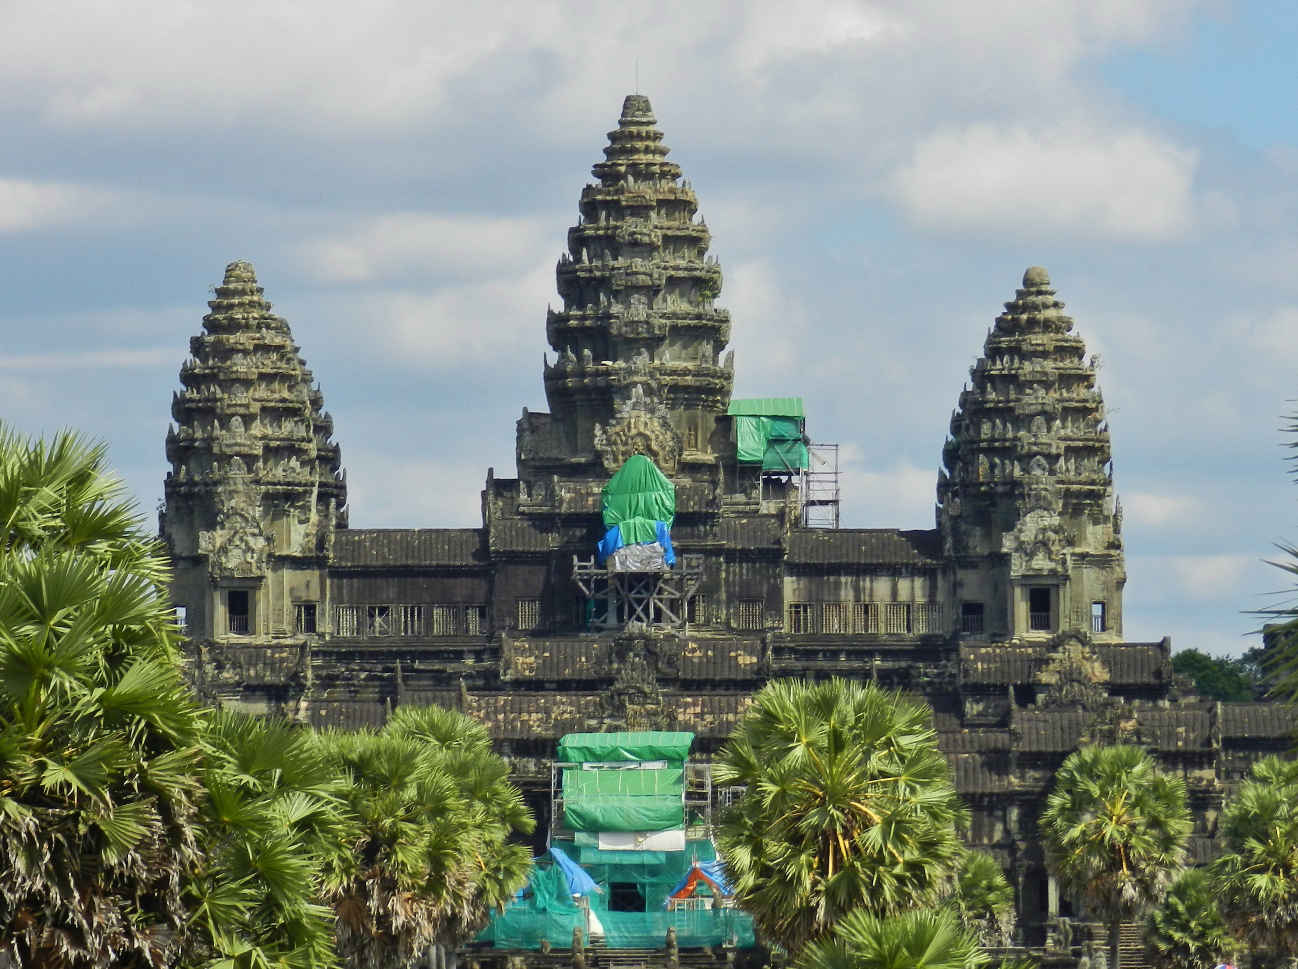 Angkor Wat, the most famous and biggest temple in Angkor